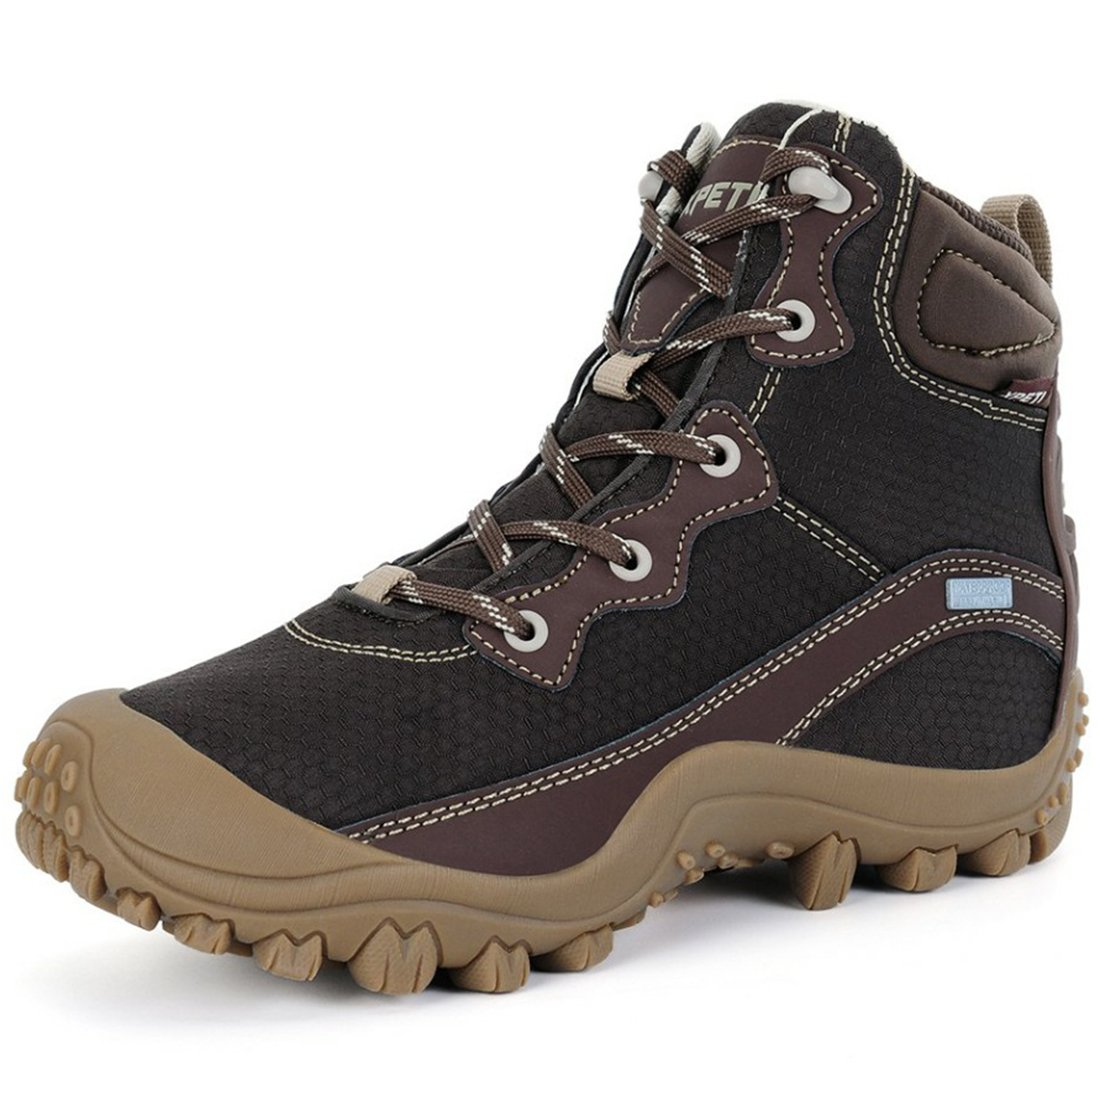 XPETI Women's Dimo Mid Waterproof Hiking Boot Trekking Outdoor Non Slip Boot Coffee 10 by XPETI